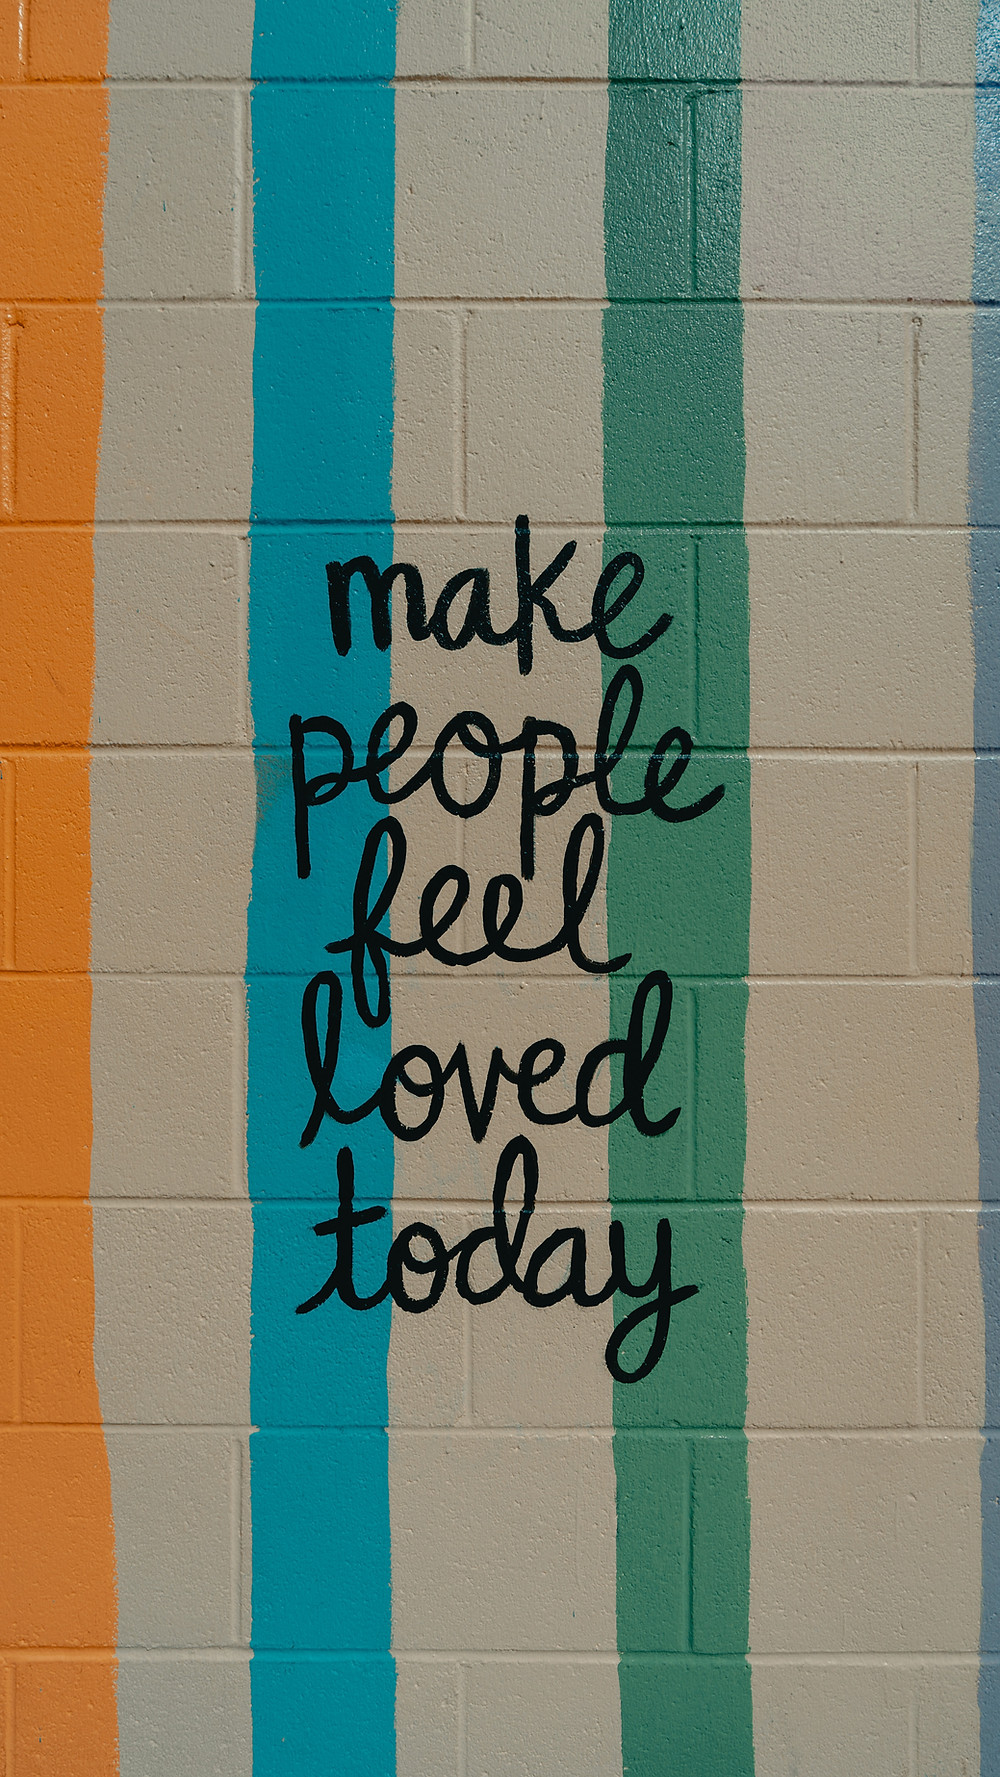 Graffiti on wall make people feel loved today